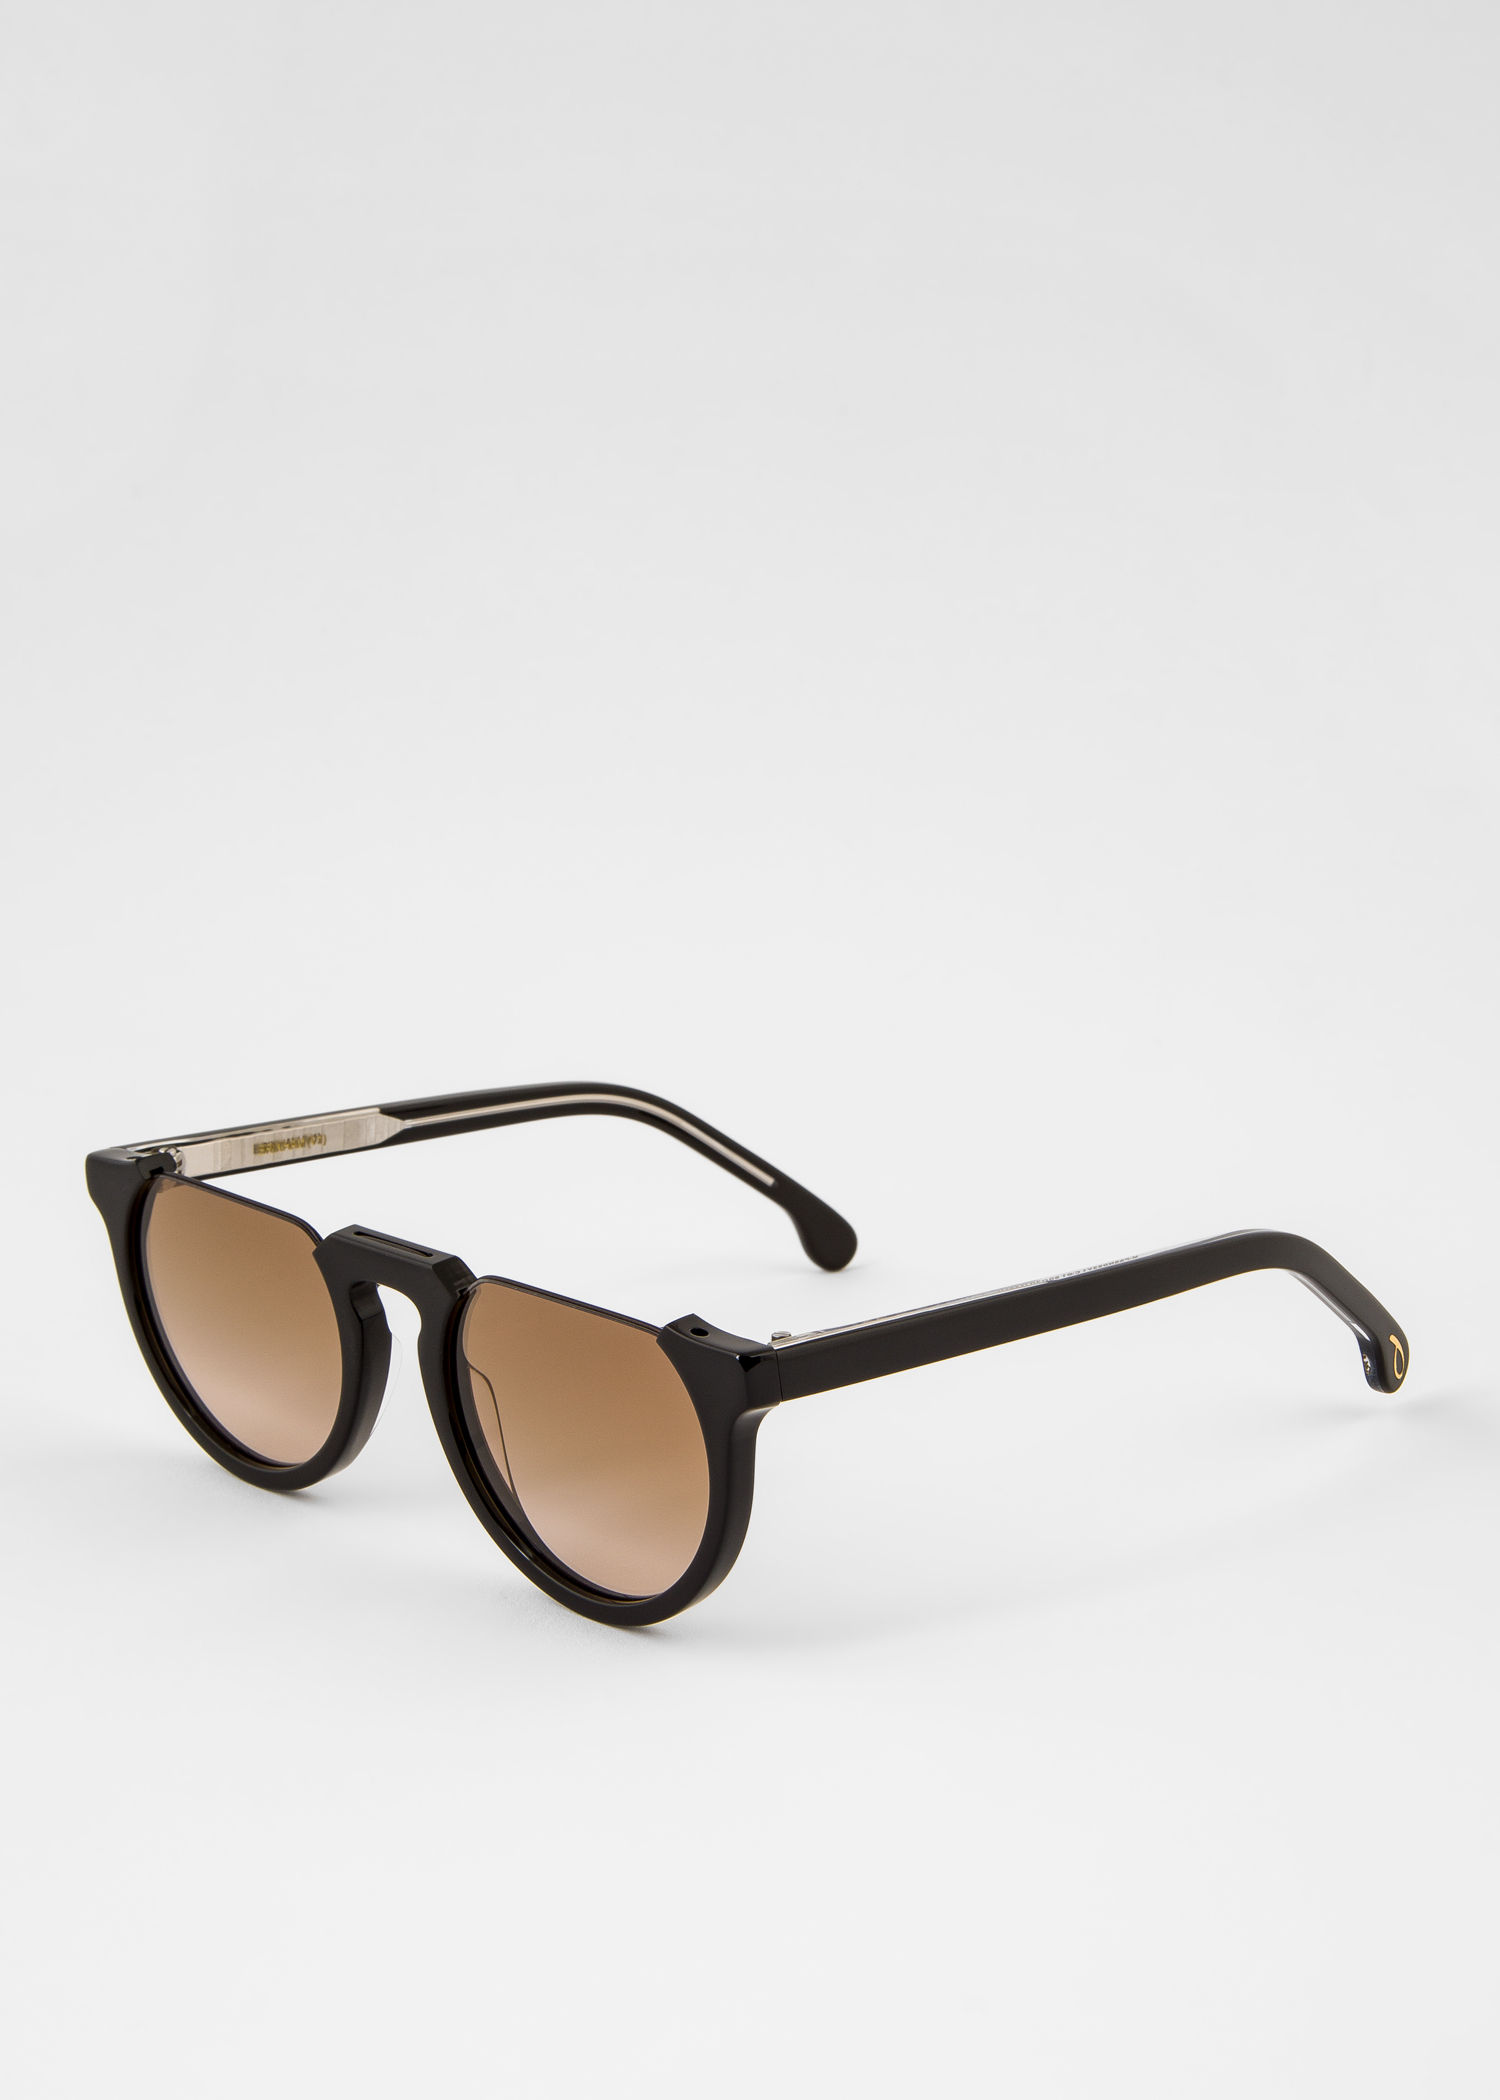 Mens 2020 Sunglasses Trends